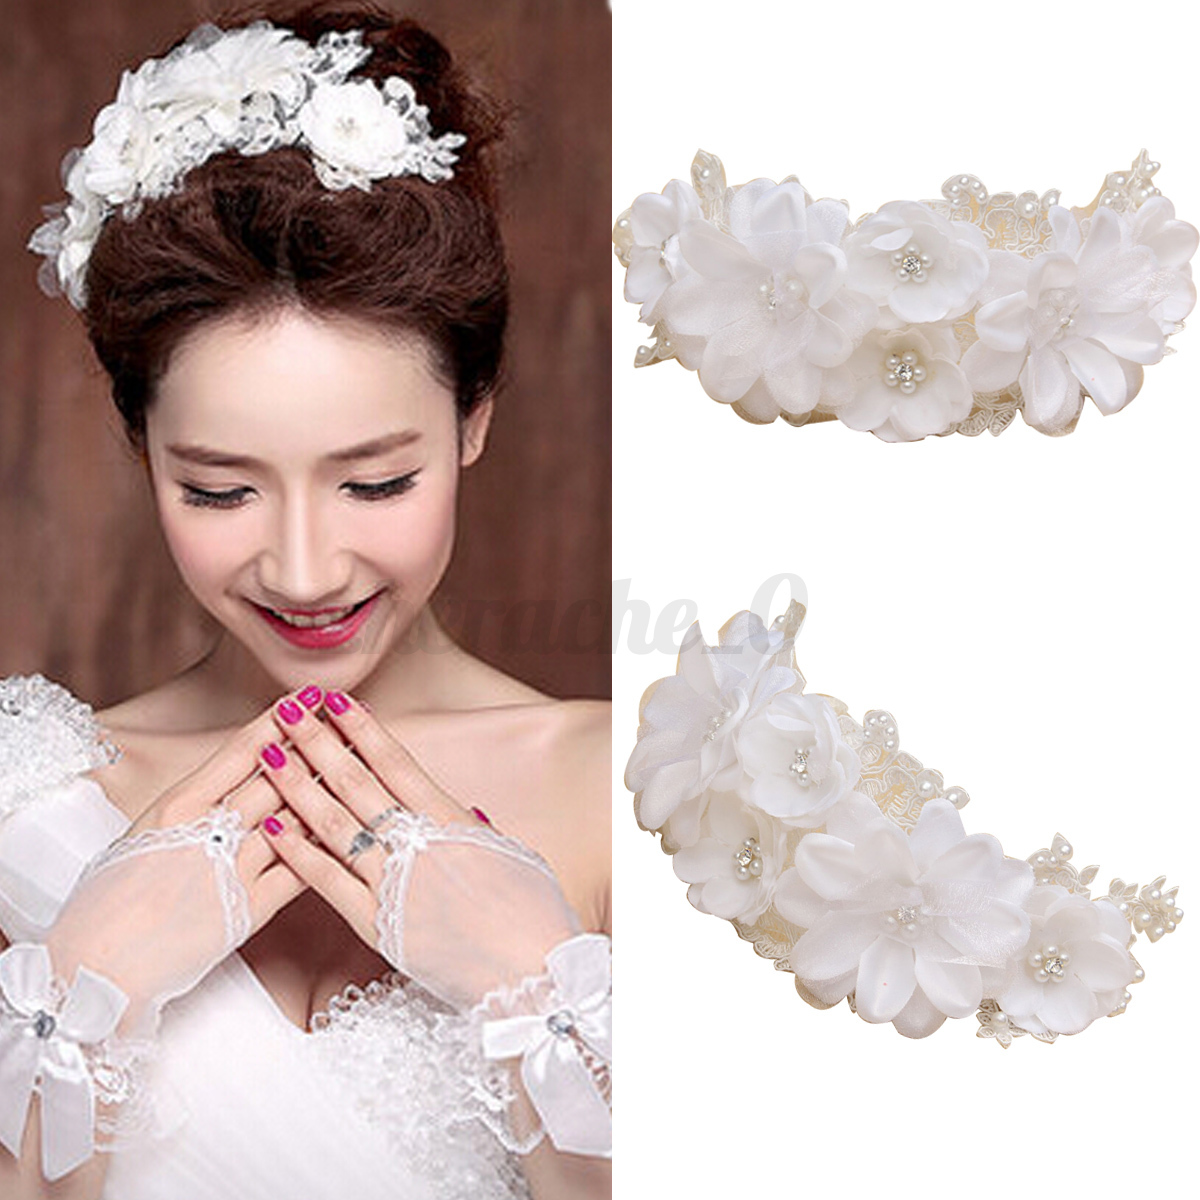 Floral Lace Headpiece For Wedding: Pearls Flower Lace Wedding Bridal Headband Headpiece